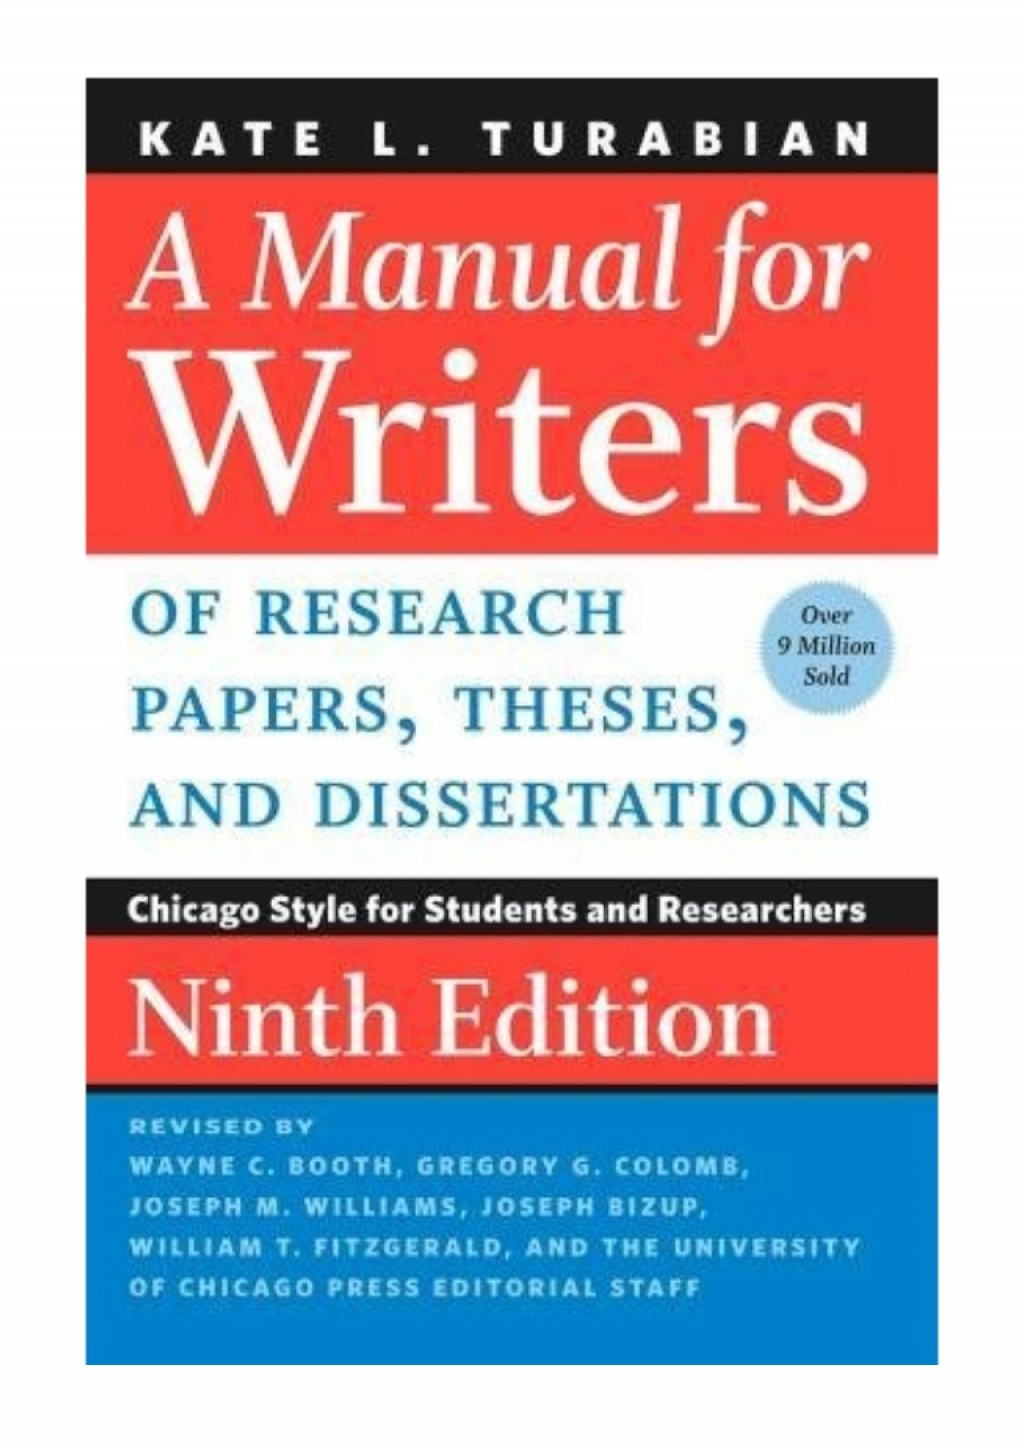 005 022643057x Amanualforwritersofresearchpapersthesesanddissertationsnintheditionbykatel Thumbnail Research Paper Manual For Writers Of Papers Theses And Sensational A Dissertations By Kate L Turabian L. Large